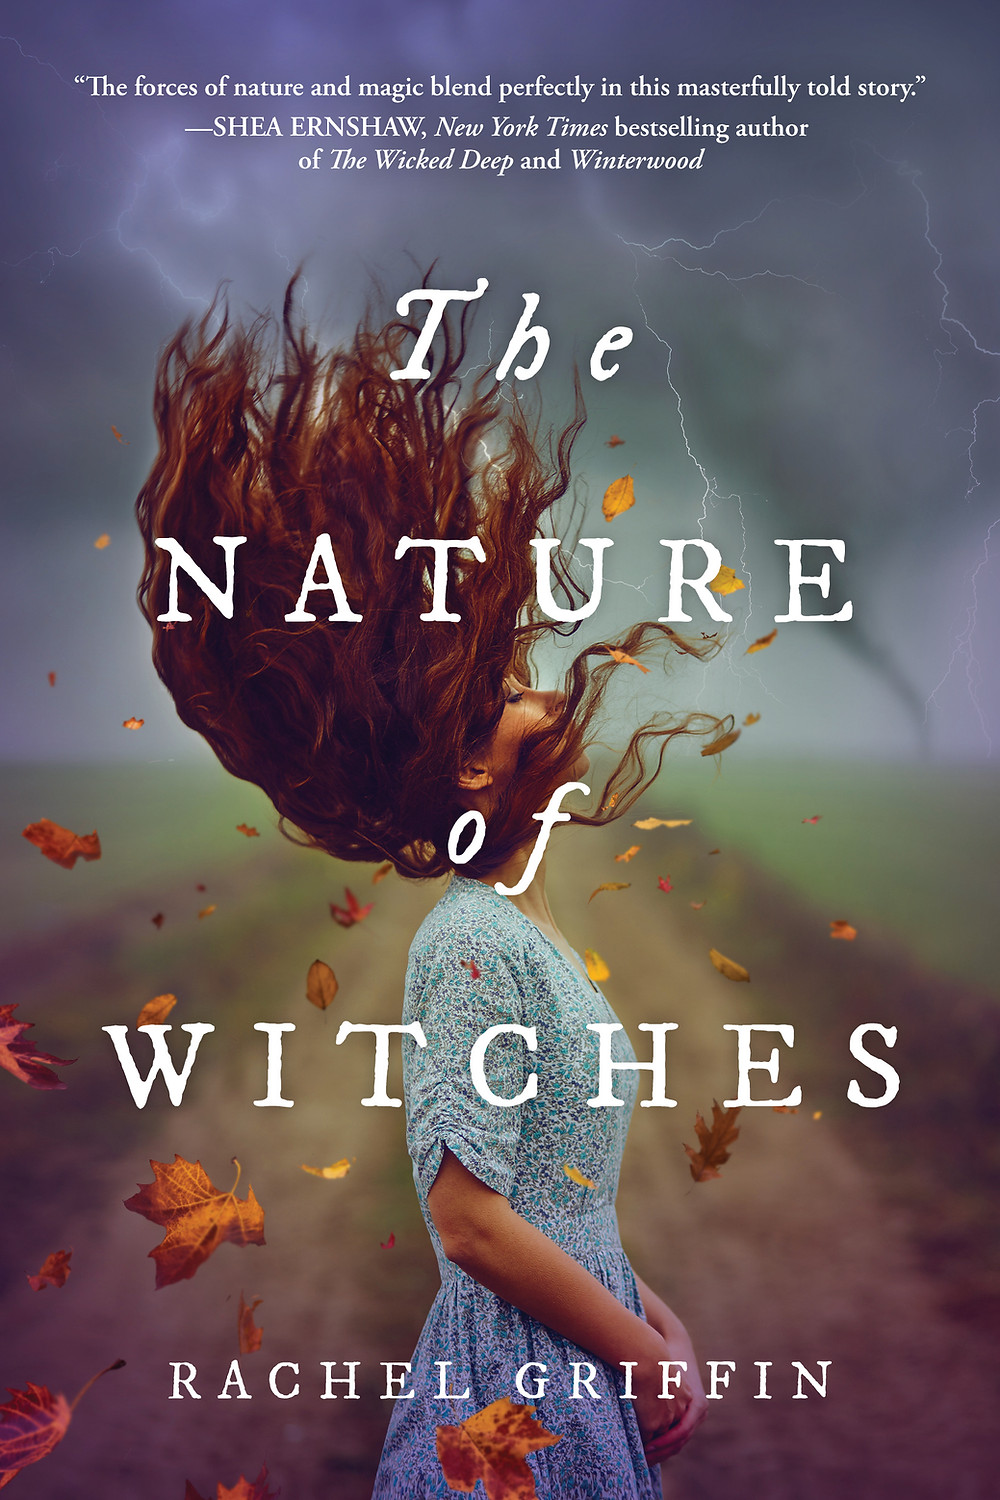 Book cover of Rachel Griffin's The Nature of Witches